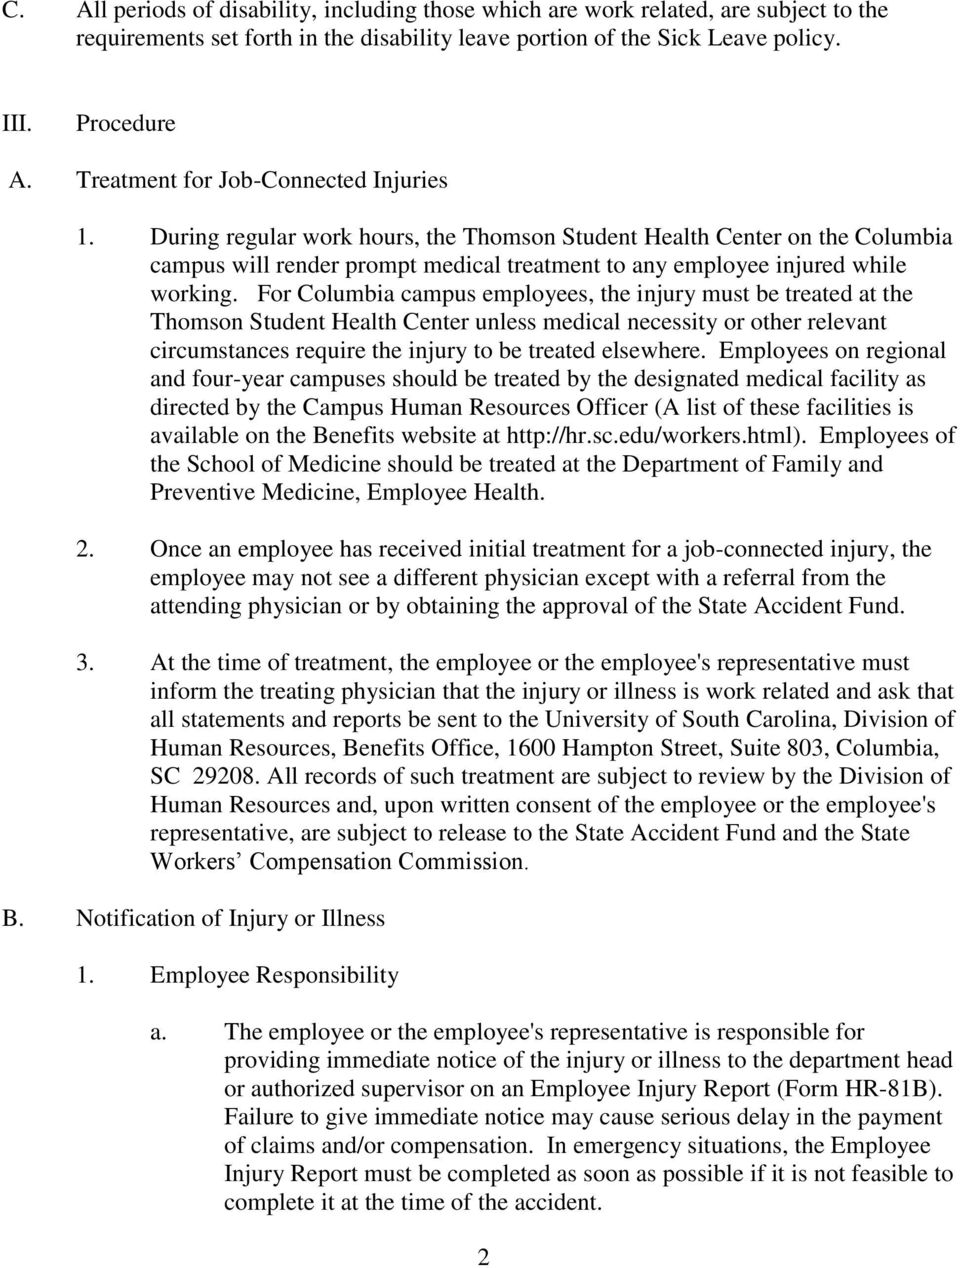 For Columbia campus employees, the injury must be treated at the Thomson Student Health Center unless medical necessity or other relevant circumstances require the injury to be treated elsewhere.